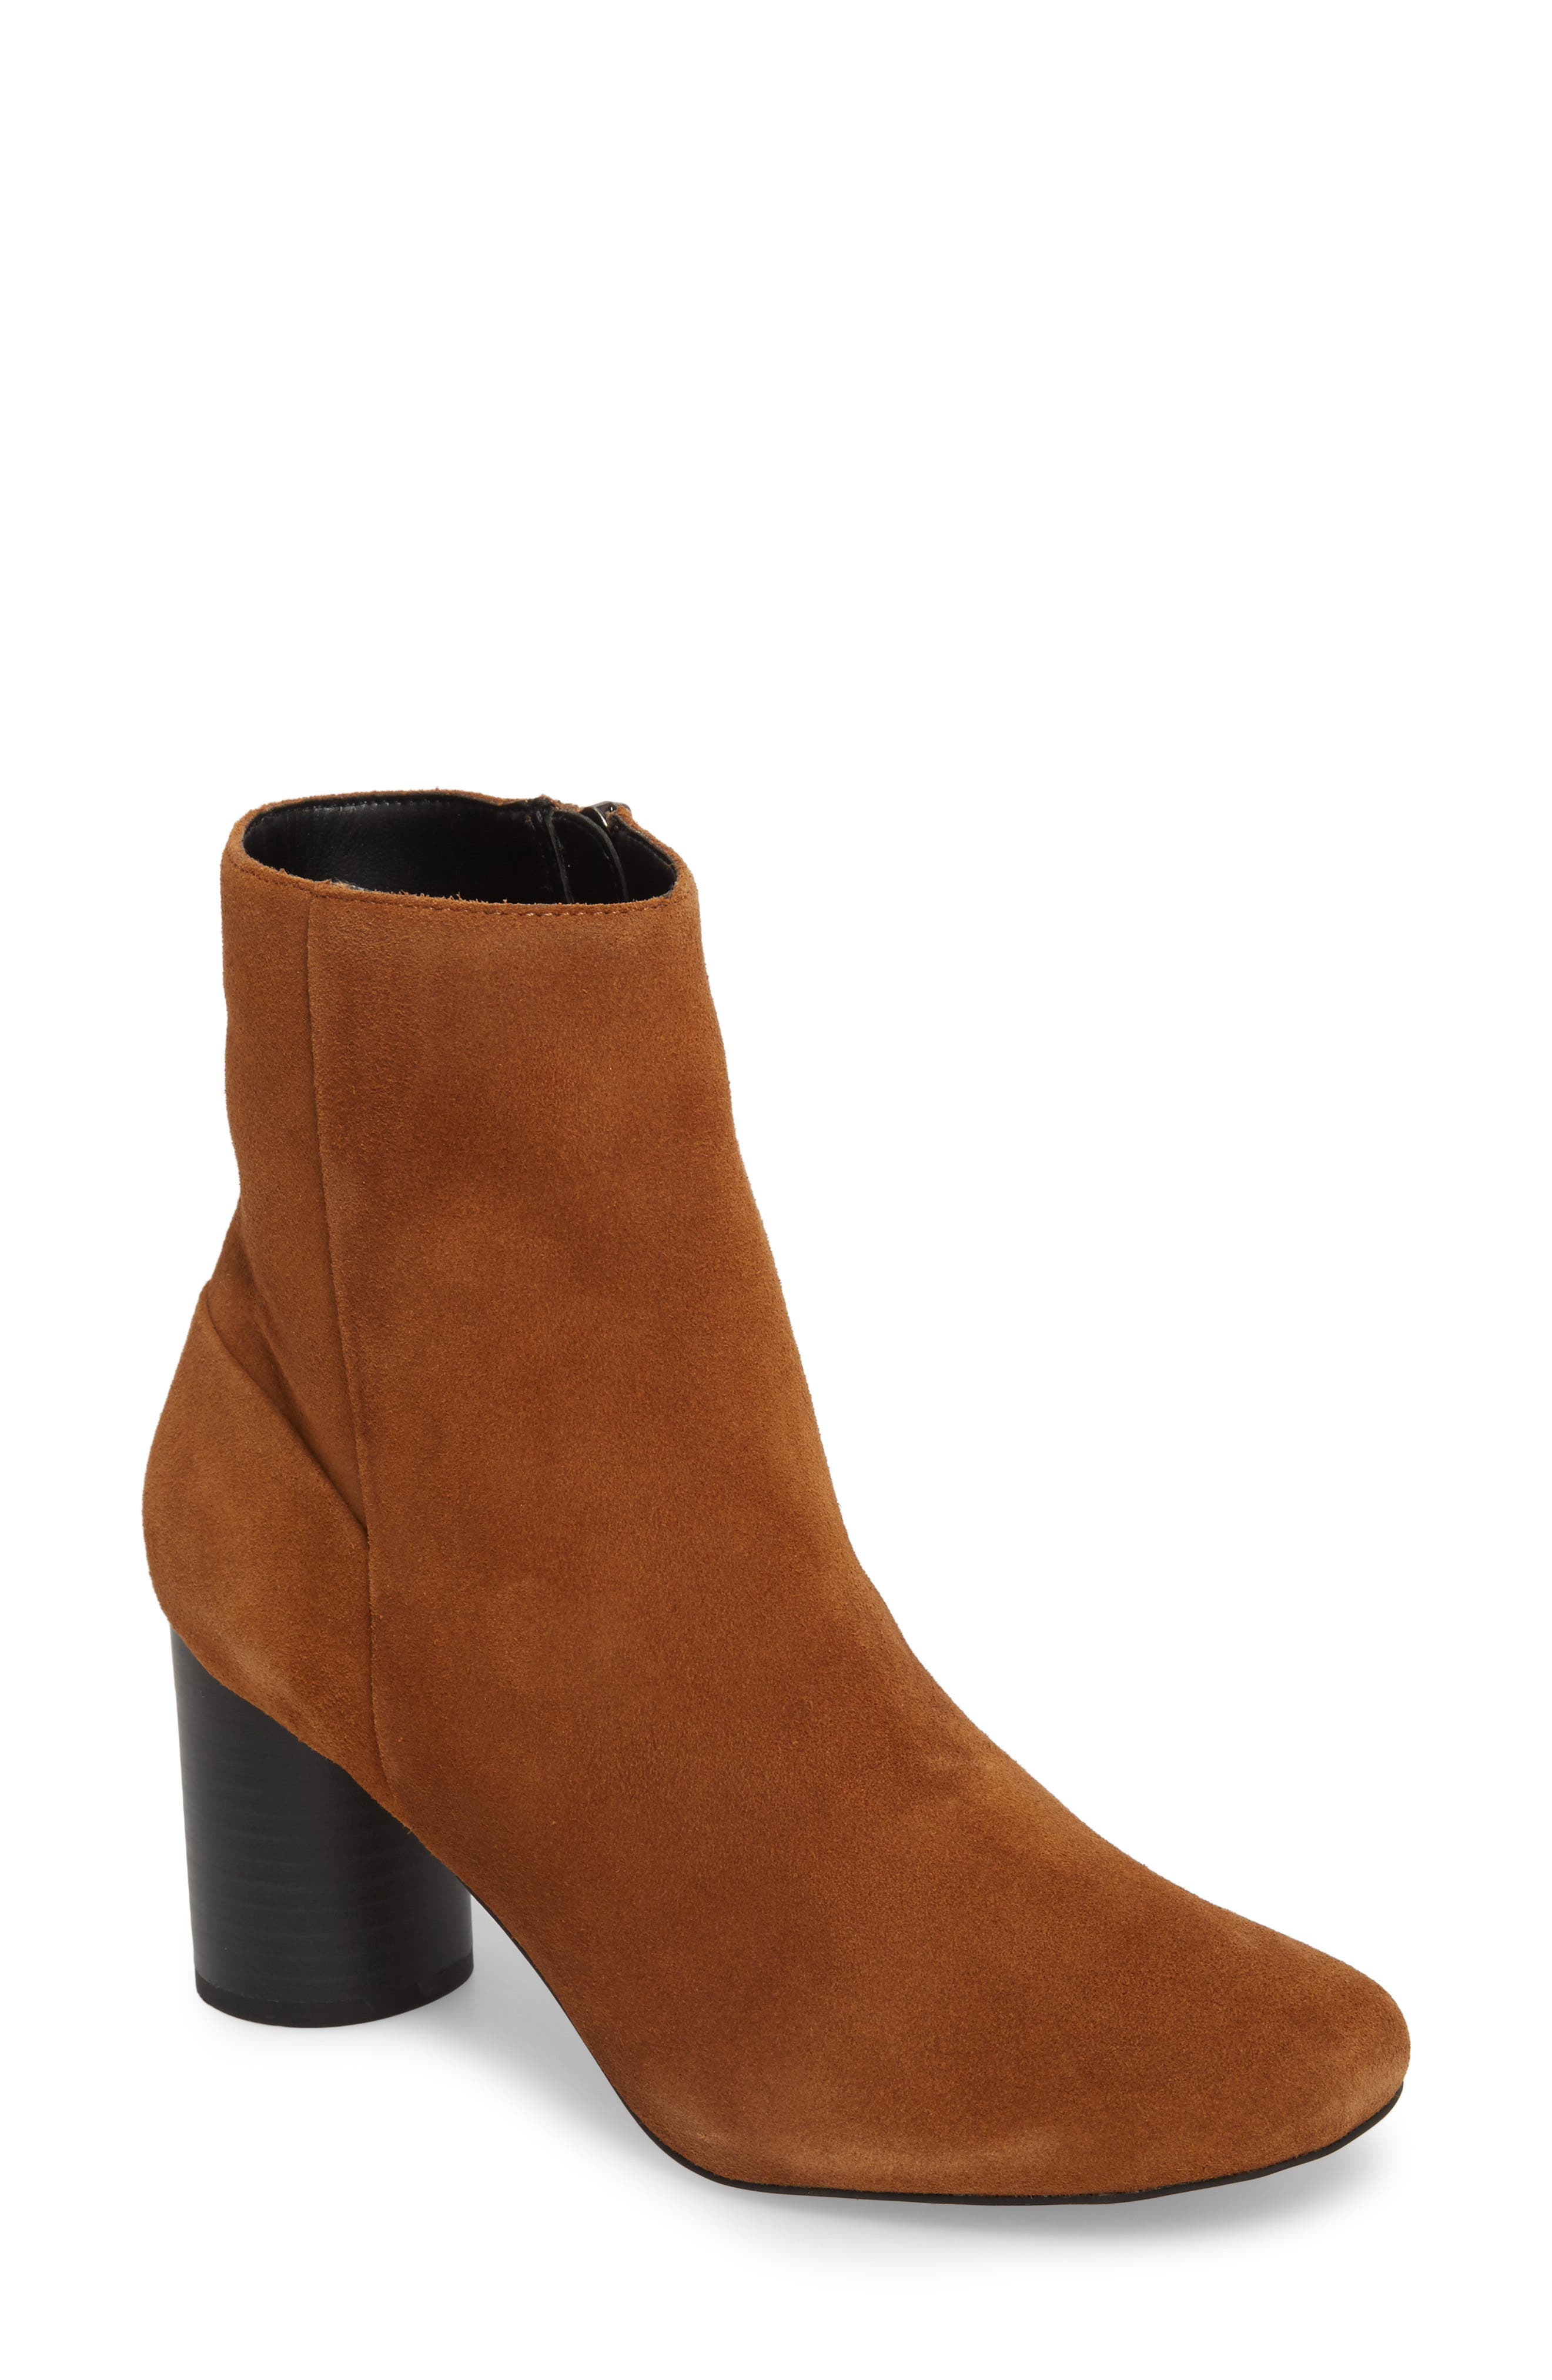 94a1f9521c65 Women's Topshop Booties & Ankle Boots | Nordstrom